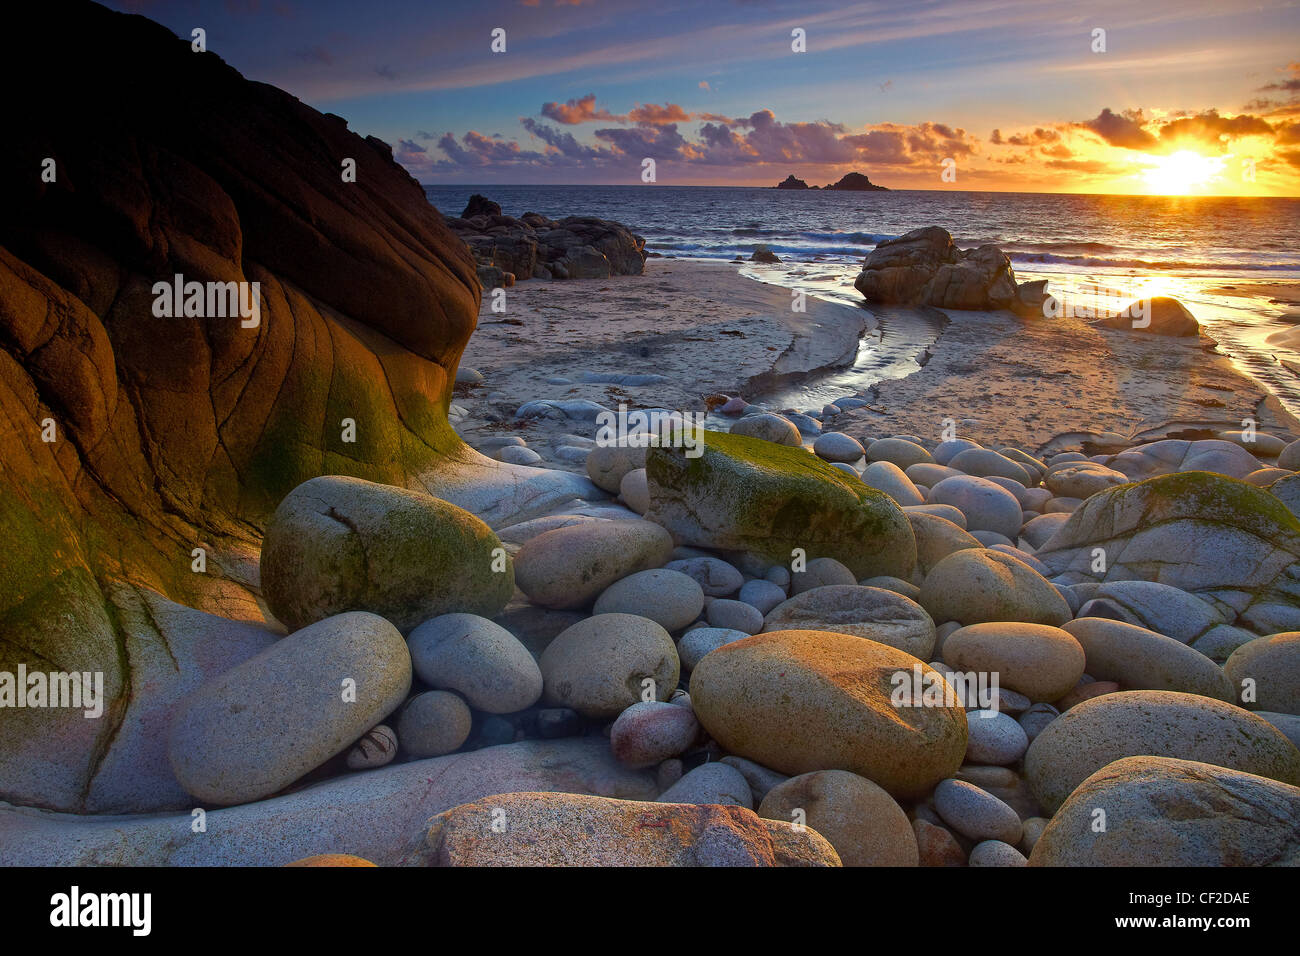 Sunset at Porth Nanven, known locally as Dinosaur Egg Beach due to the large number of ovoid rocks found there. - Stock Image